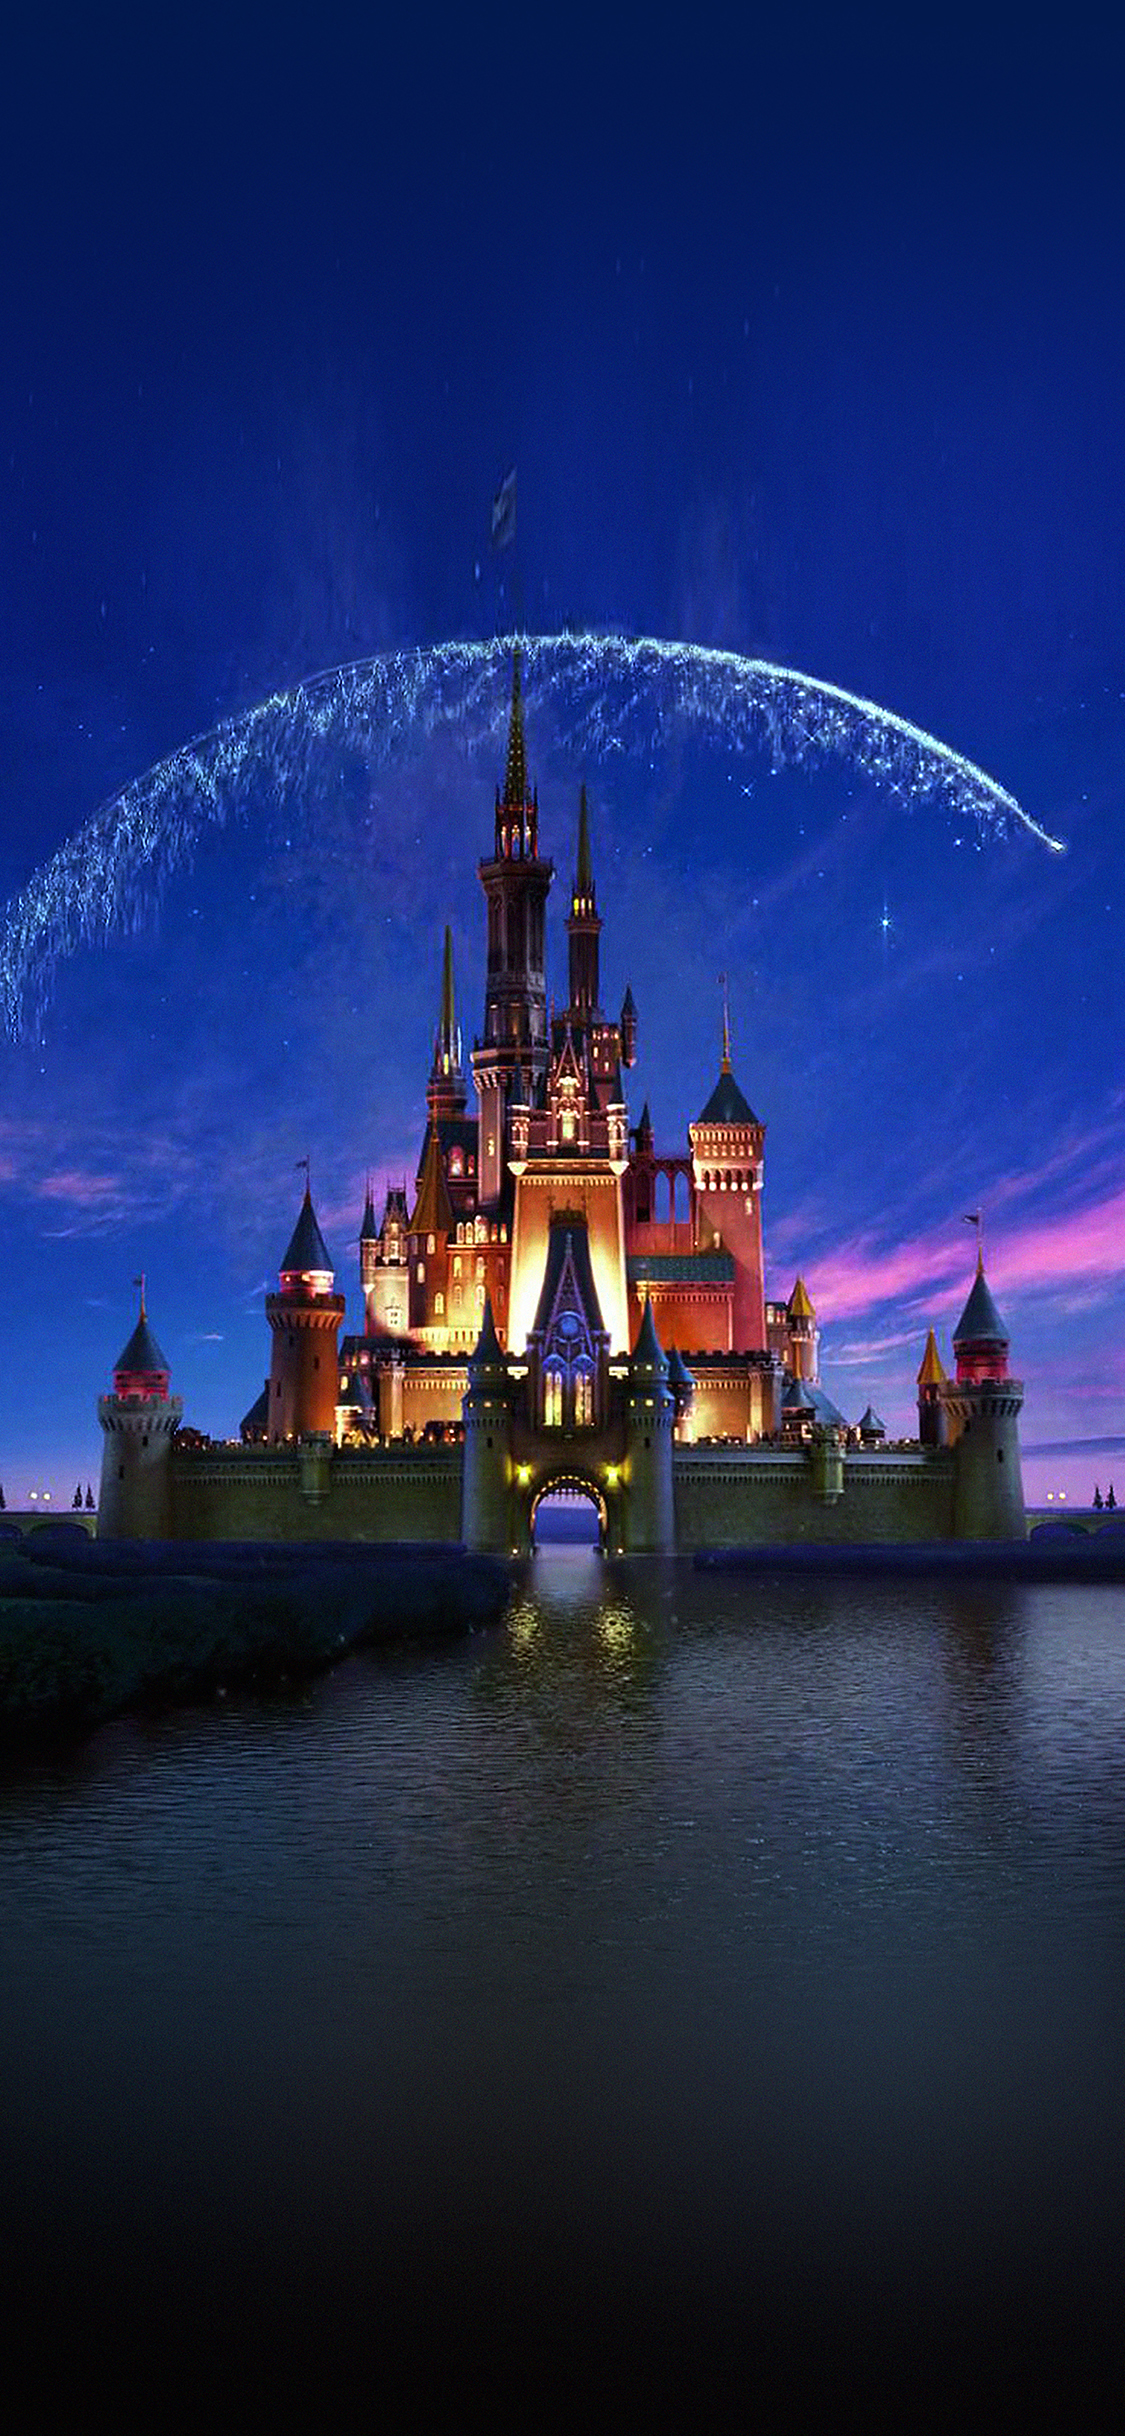 iPhoneXpapers.com-Apple-iPhone-wallpaper-ac76-wallpaper-disney-castle-artwork-illust-sky